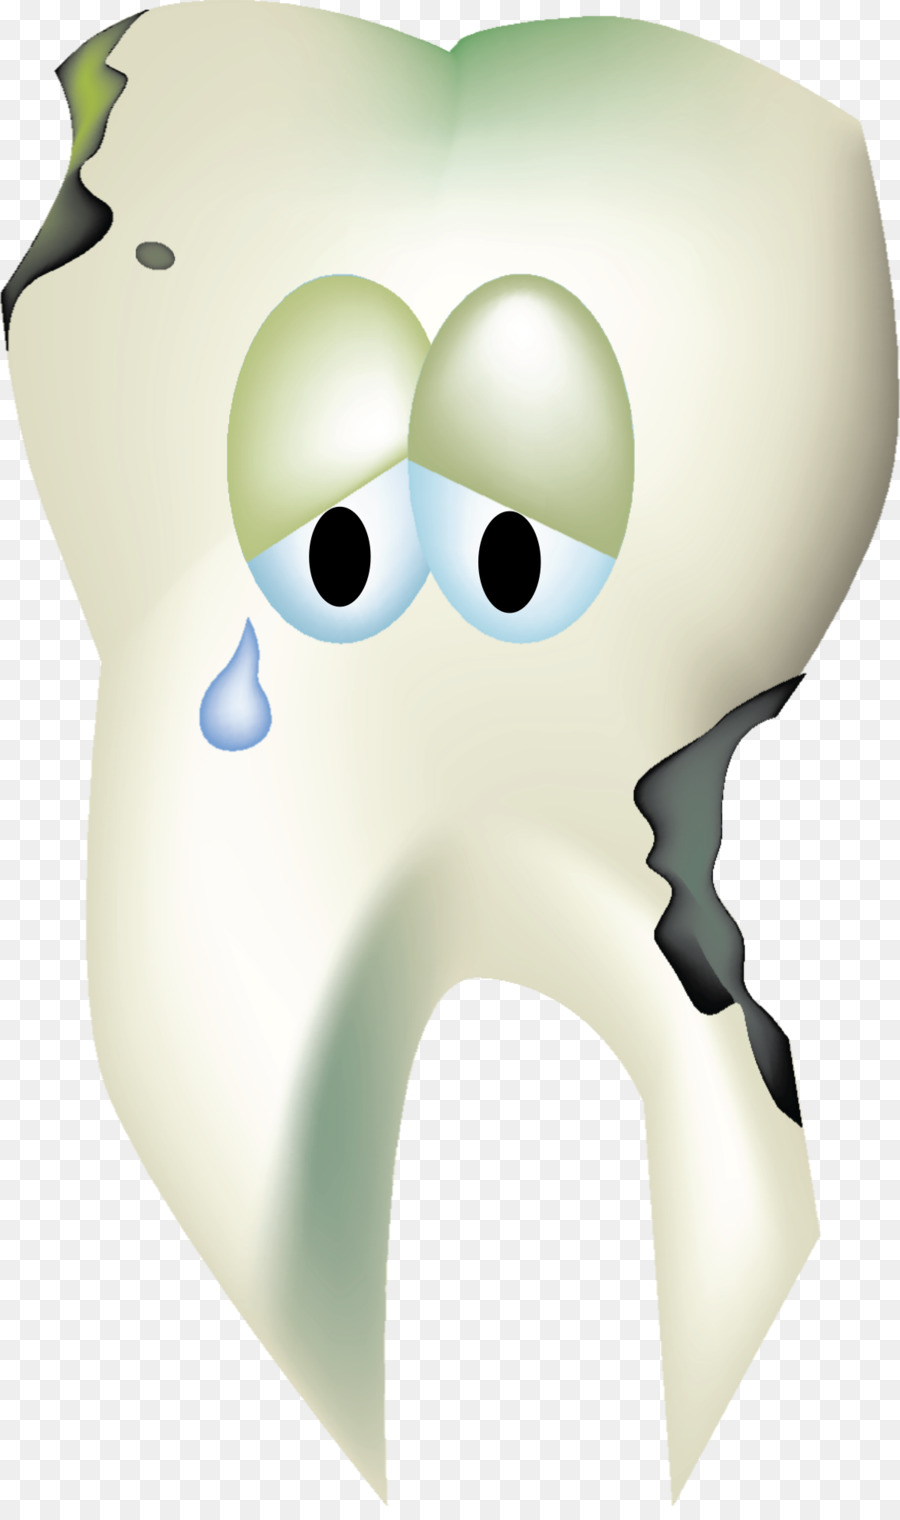 Tooth Decay Human Tooth Dentistry Clip Art Teeth Png Download